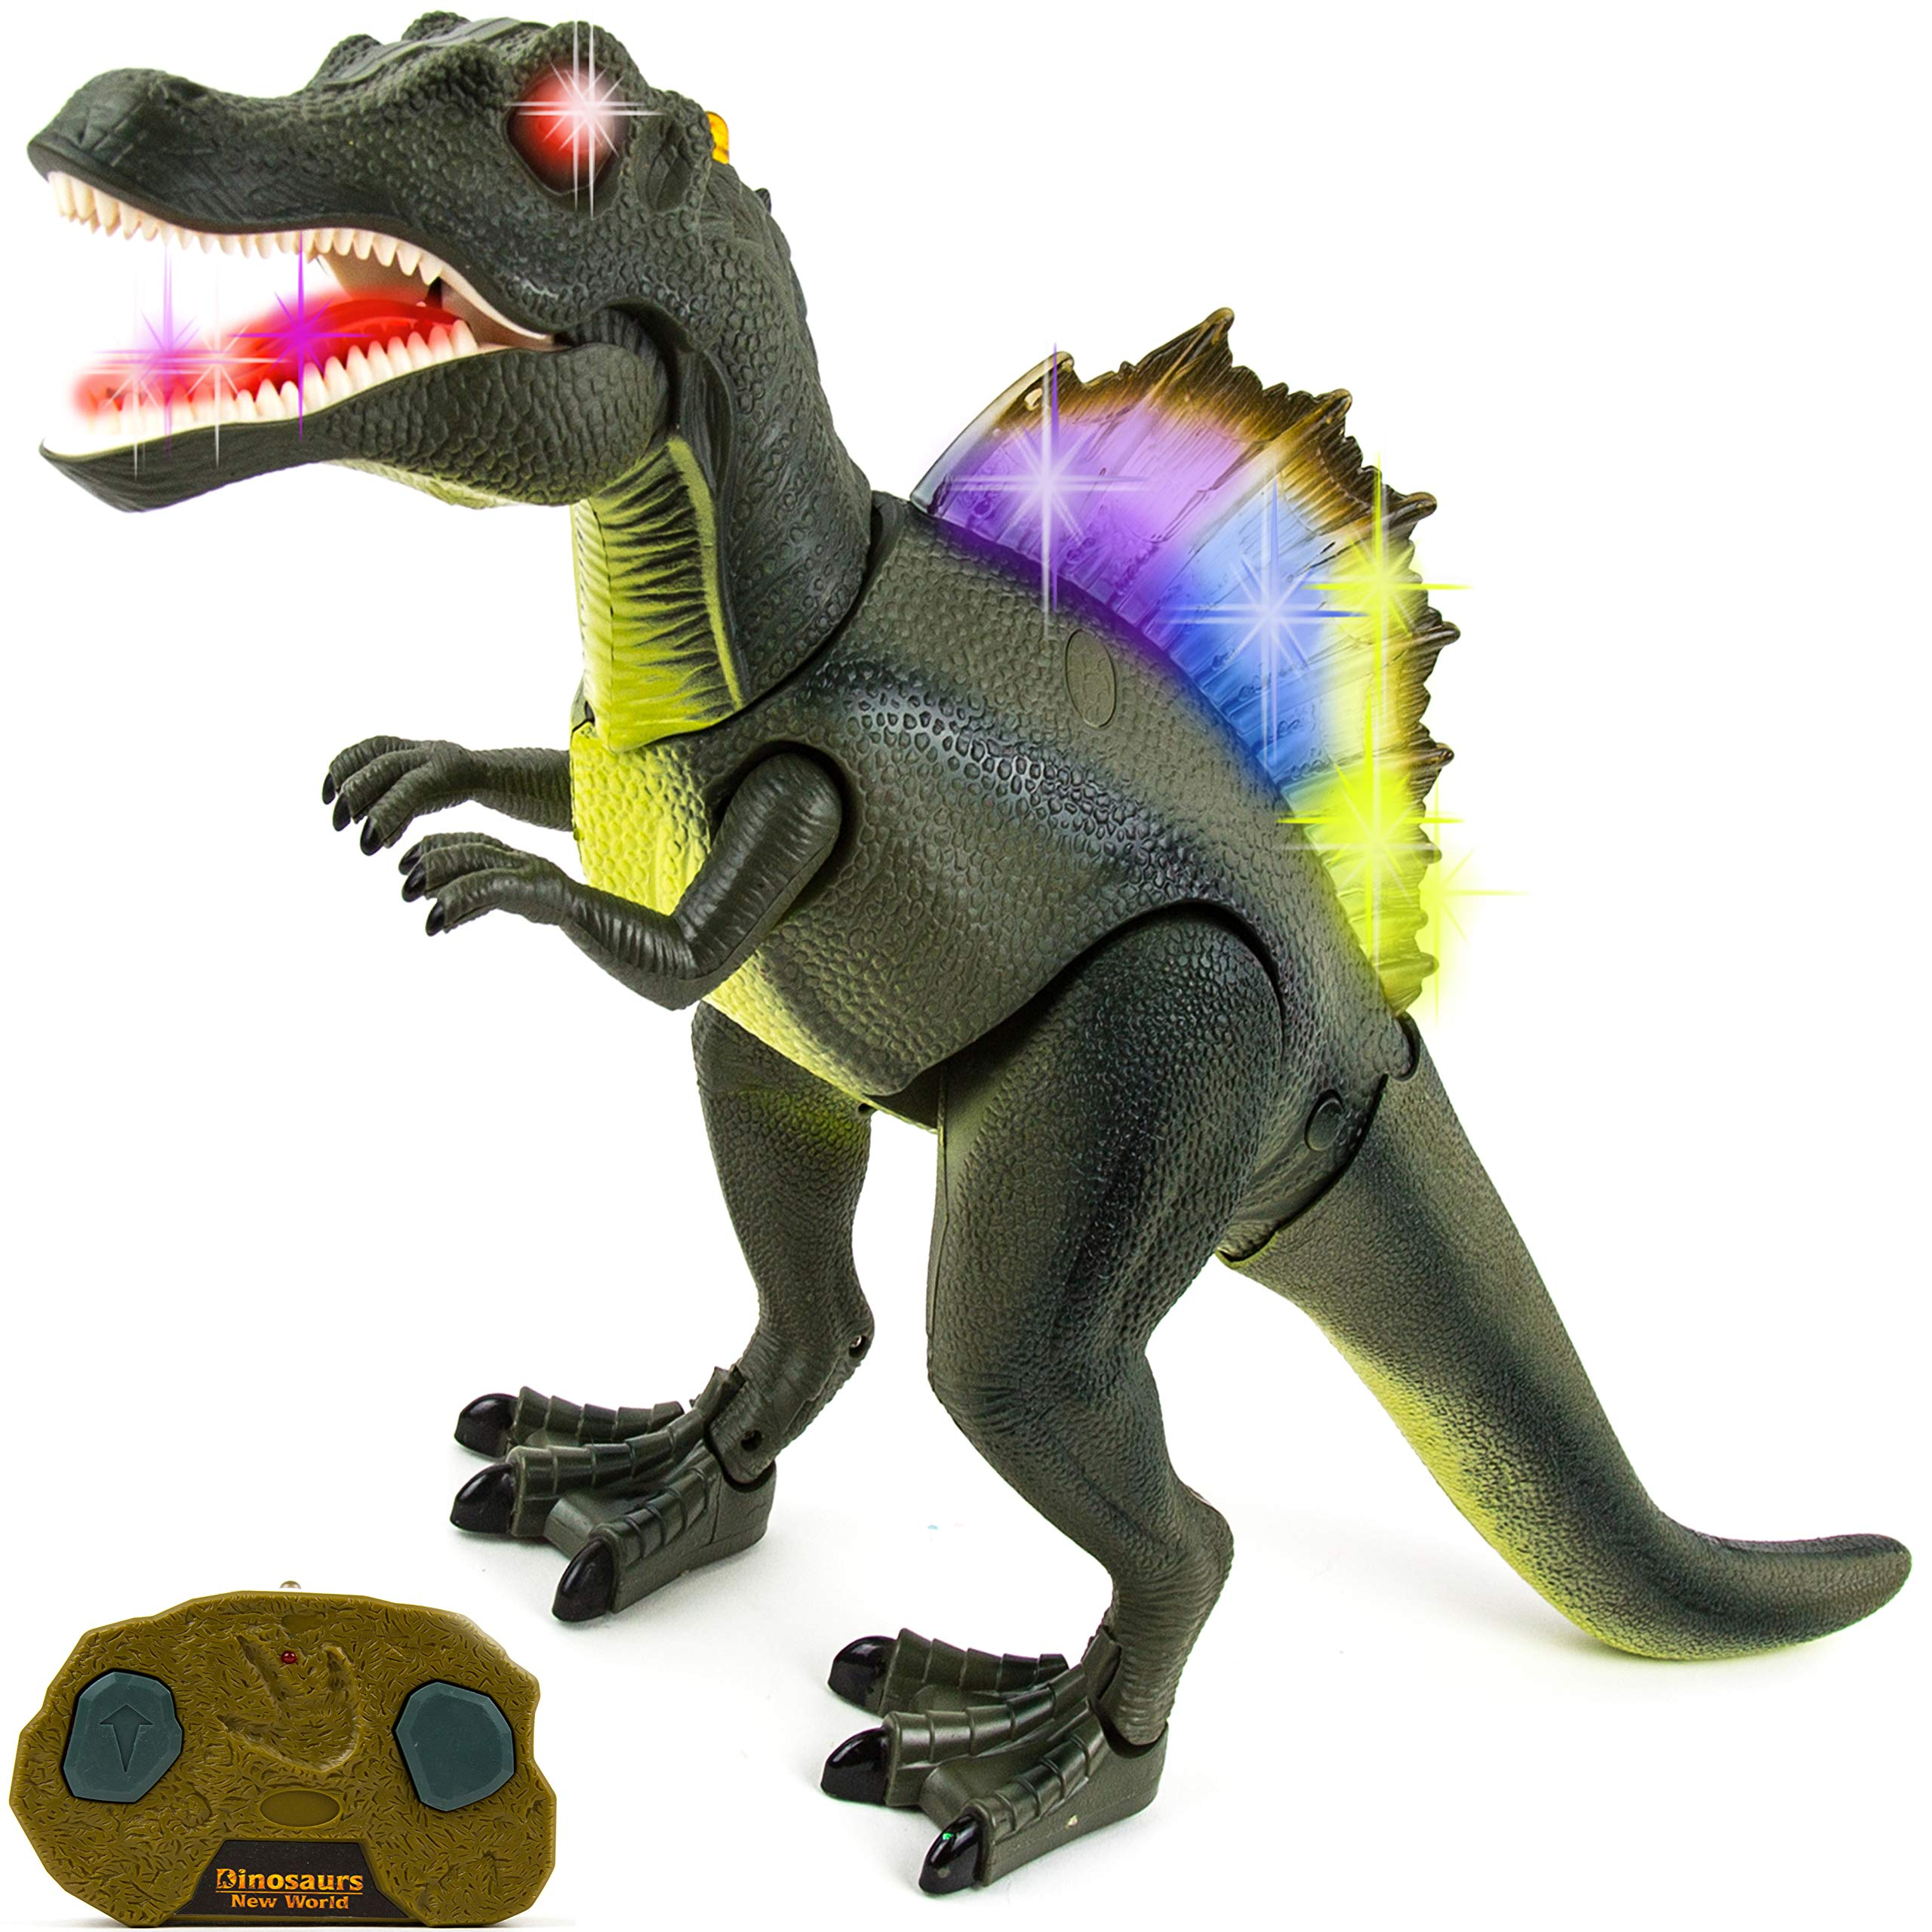 Toysery Remote Control Dinosaur Toy for Kids | RC Walking Realistic Dinosaur | Toy Roars, Lights & Sounds | Fast Forward Function | Ultimate Fun for Kids